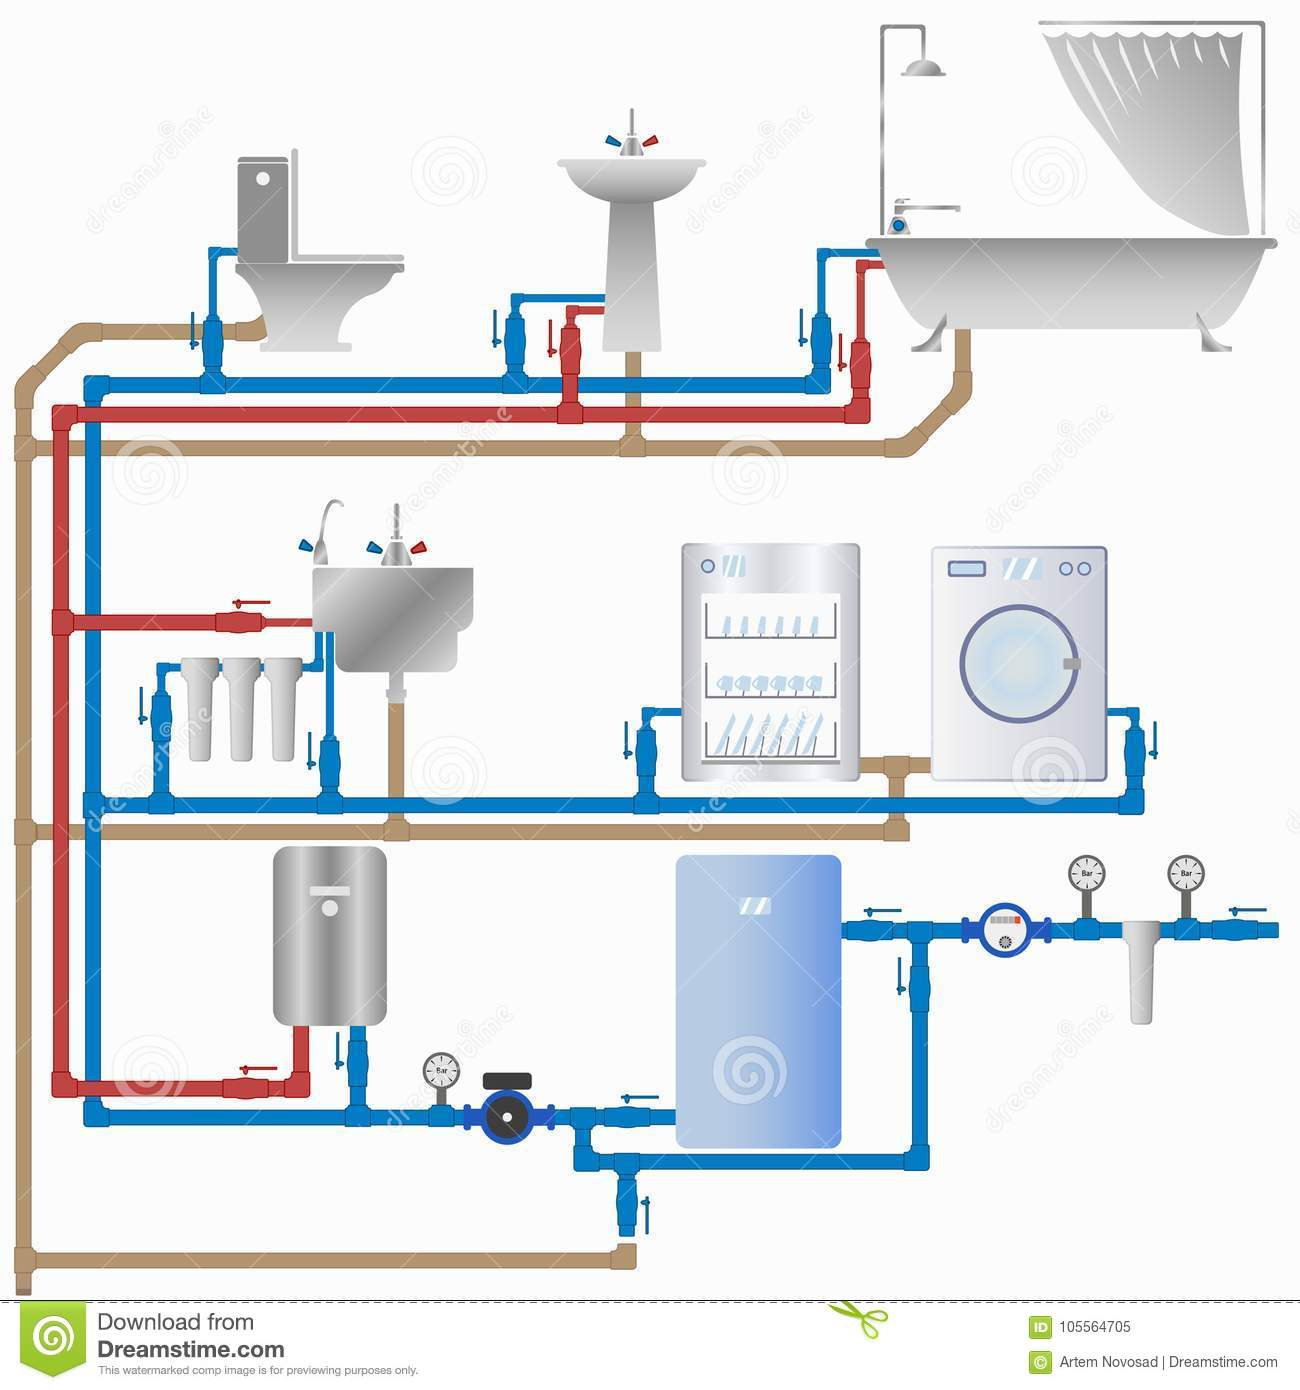 Water Supply And Sewerage System In The House Stock Vector